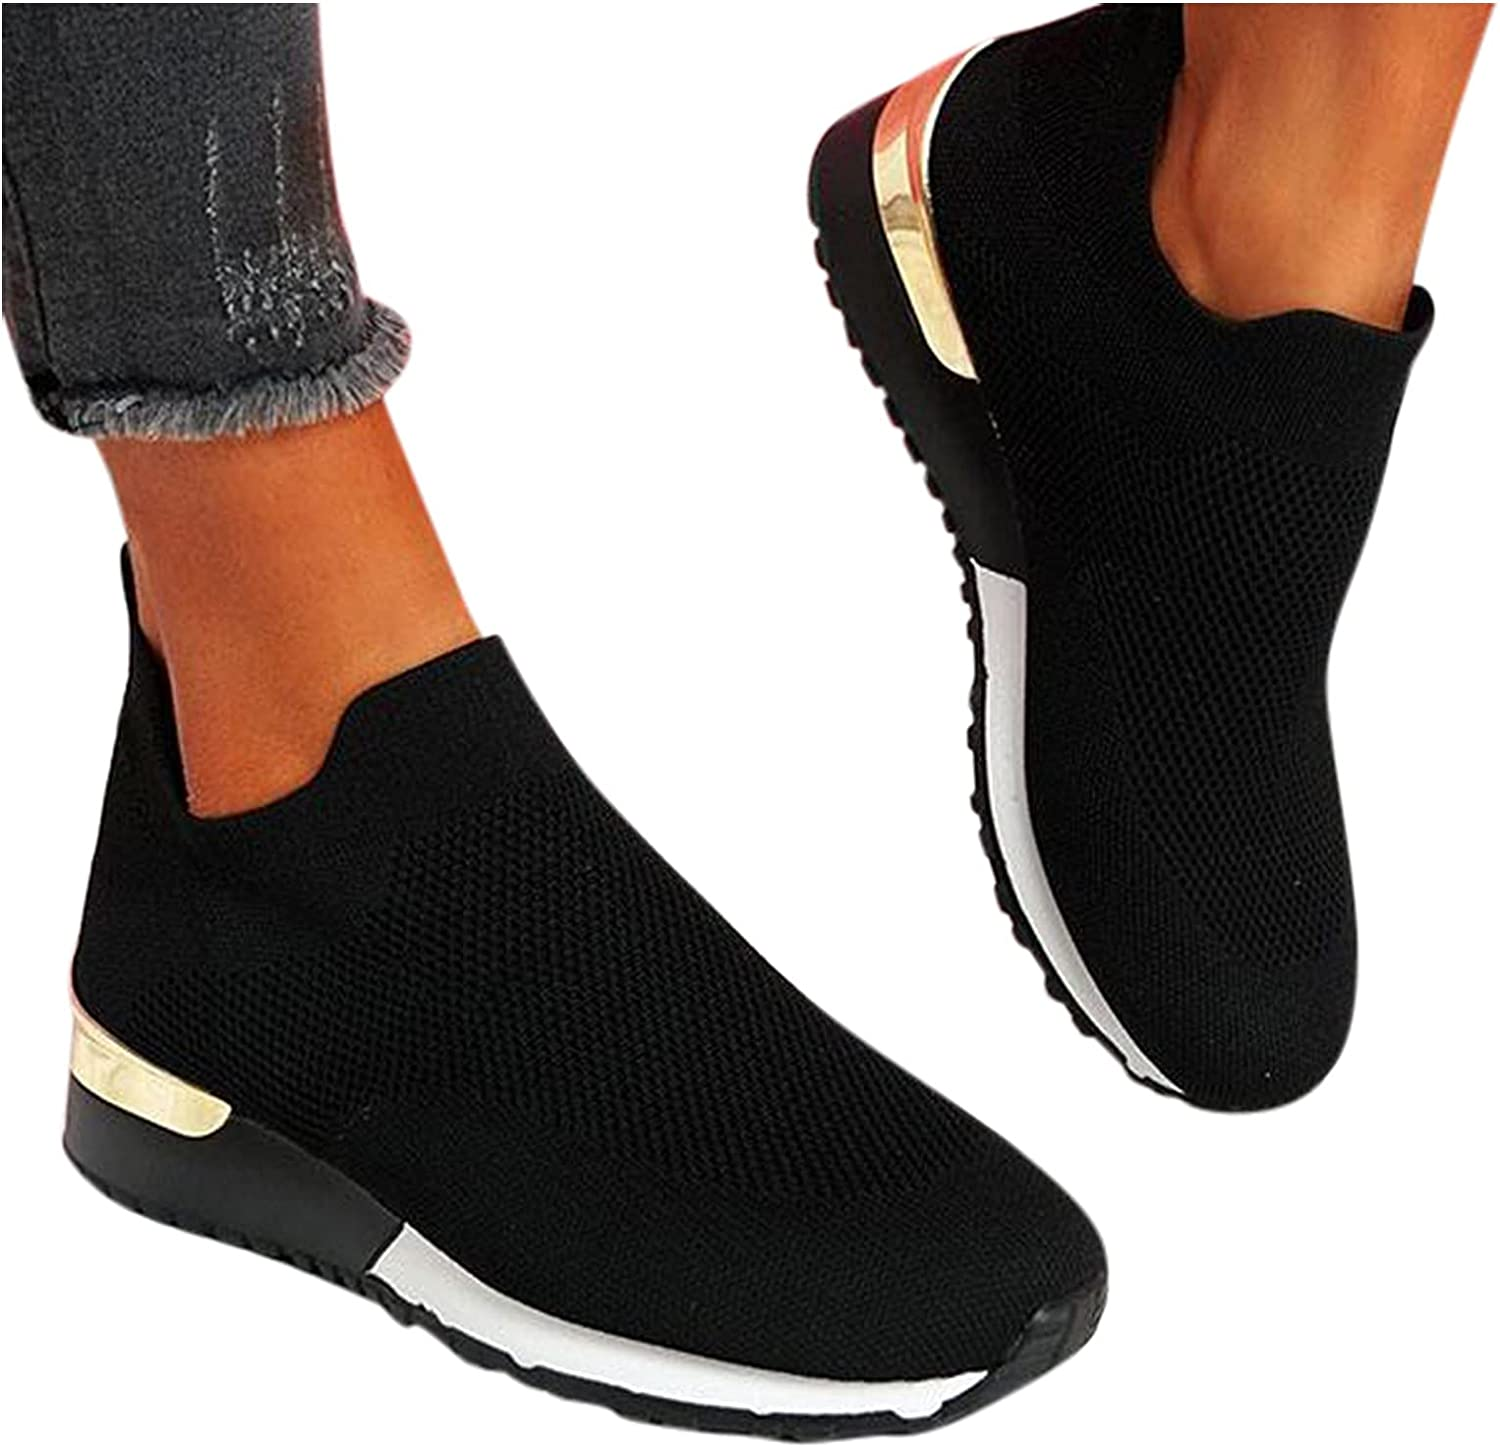 AODONG Running Shoes for Women Comfy Sneaker Shoes Slip On Loafers Fashion Canvas Shoes Casual Summer Travel Daily Walking Shoes